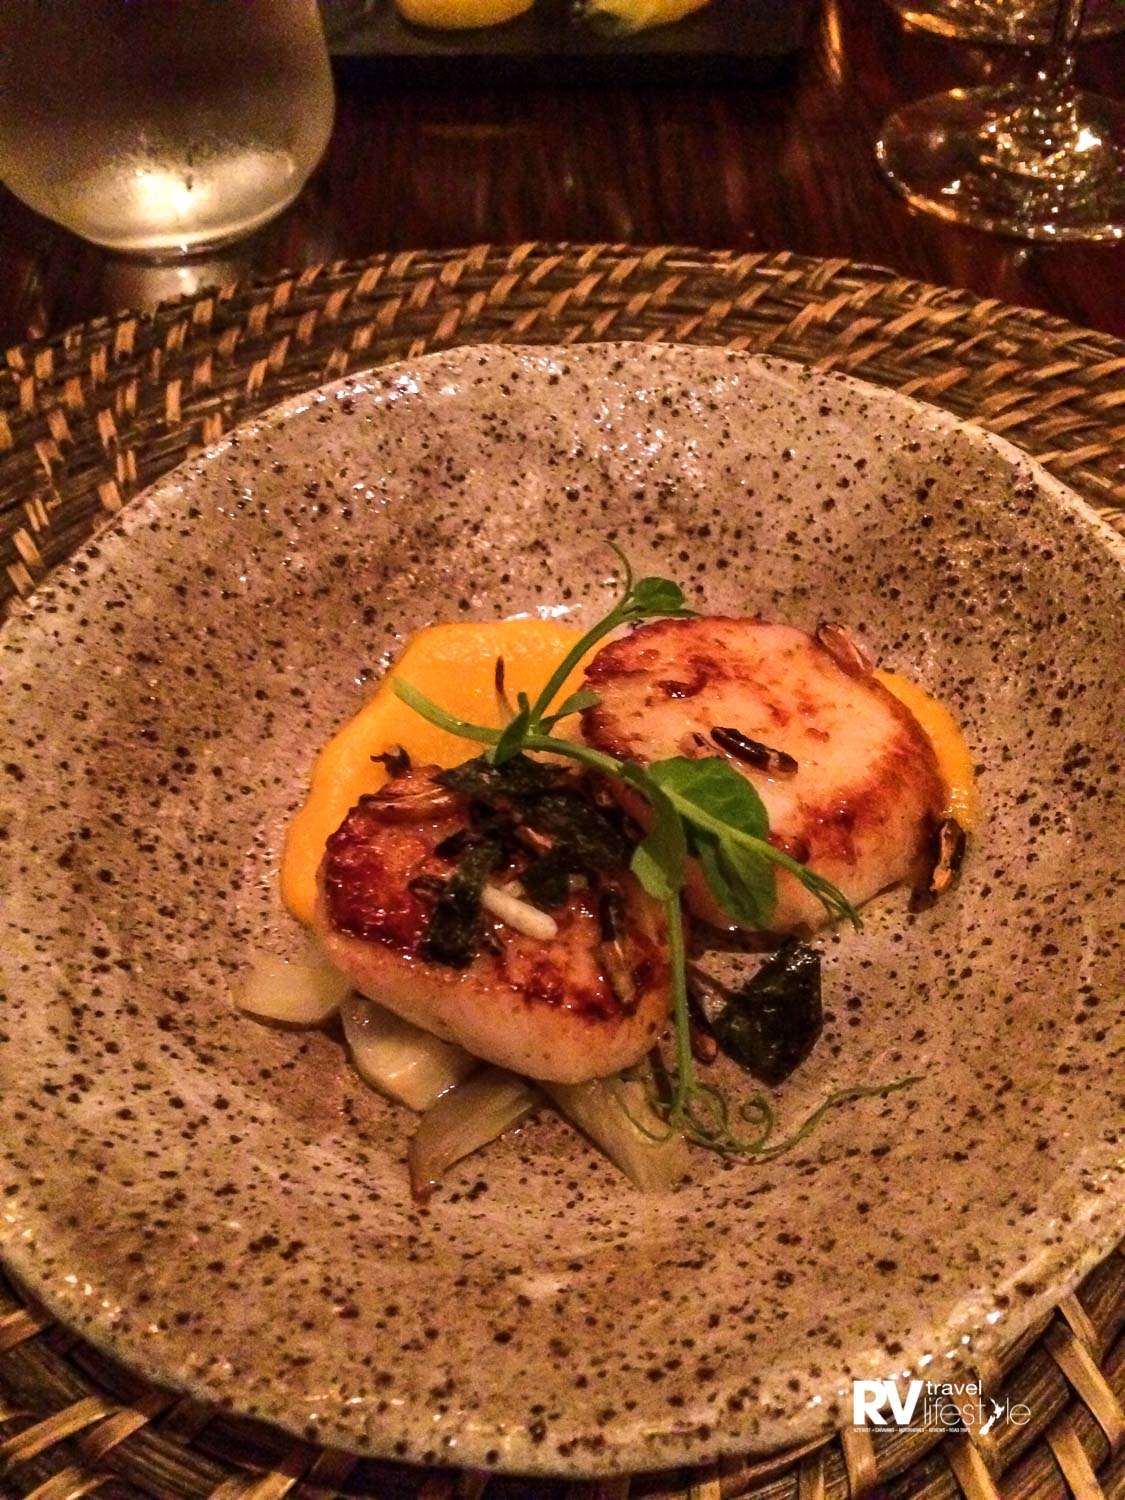 One of my courses on the menu at Wharekauhau, these two scallops were the most delicious I have ever eaten - wow